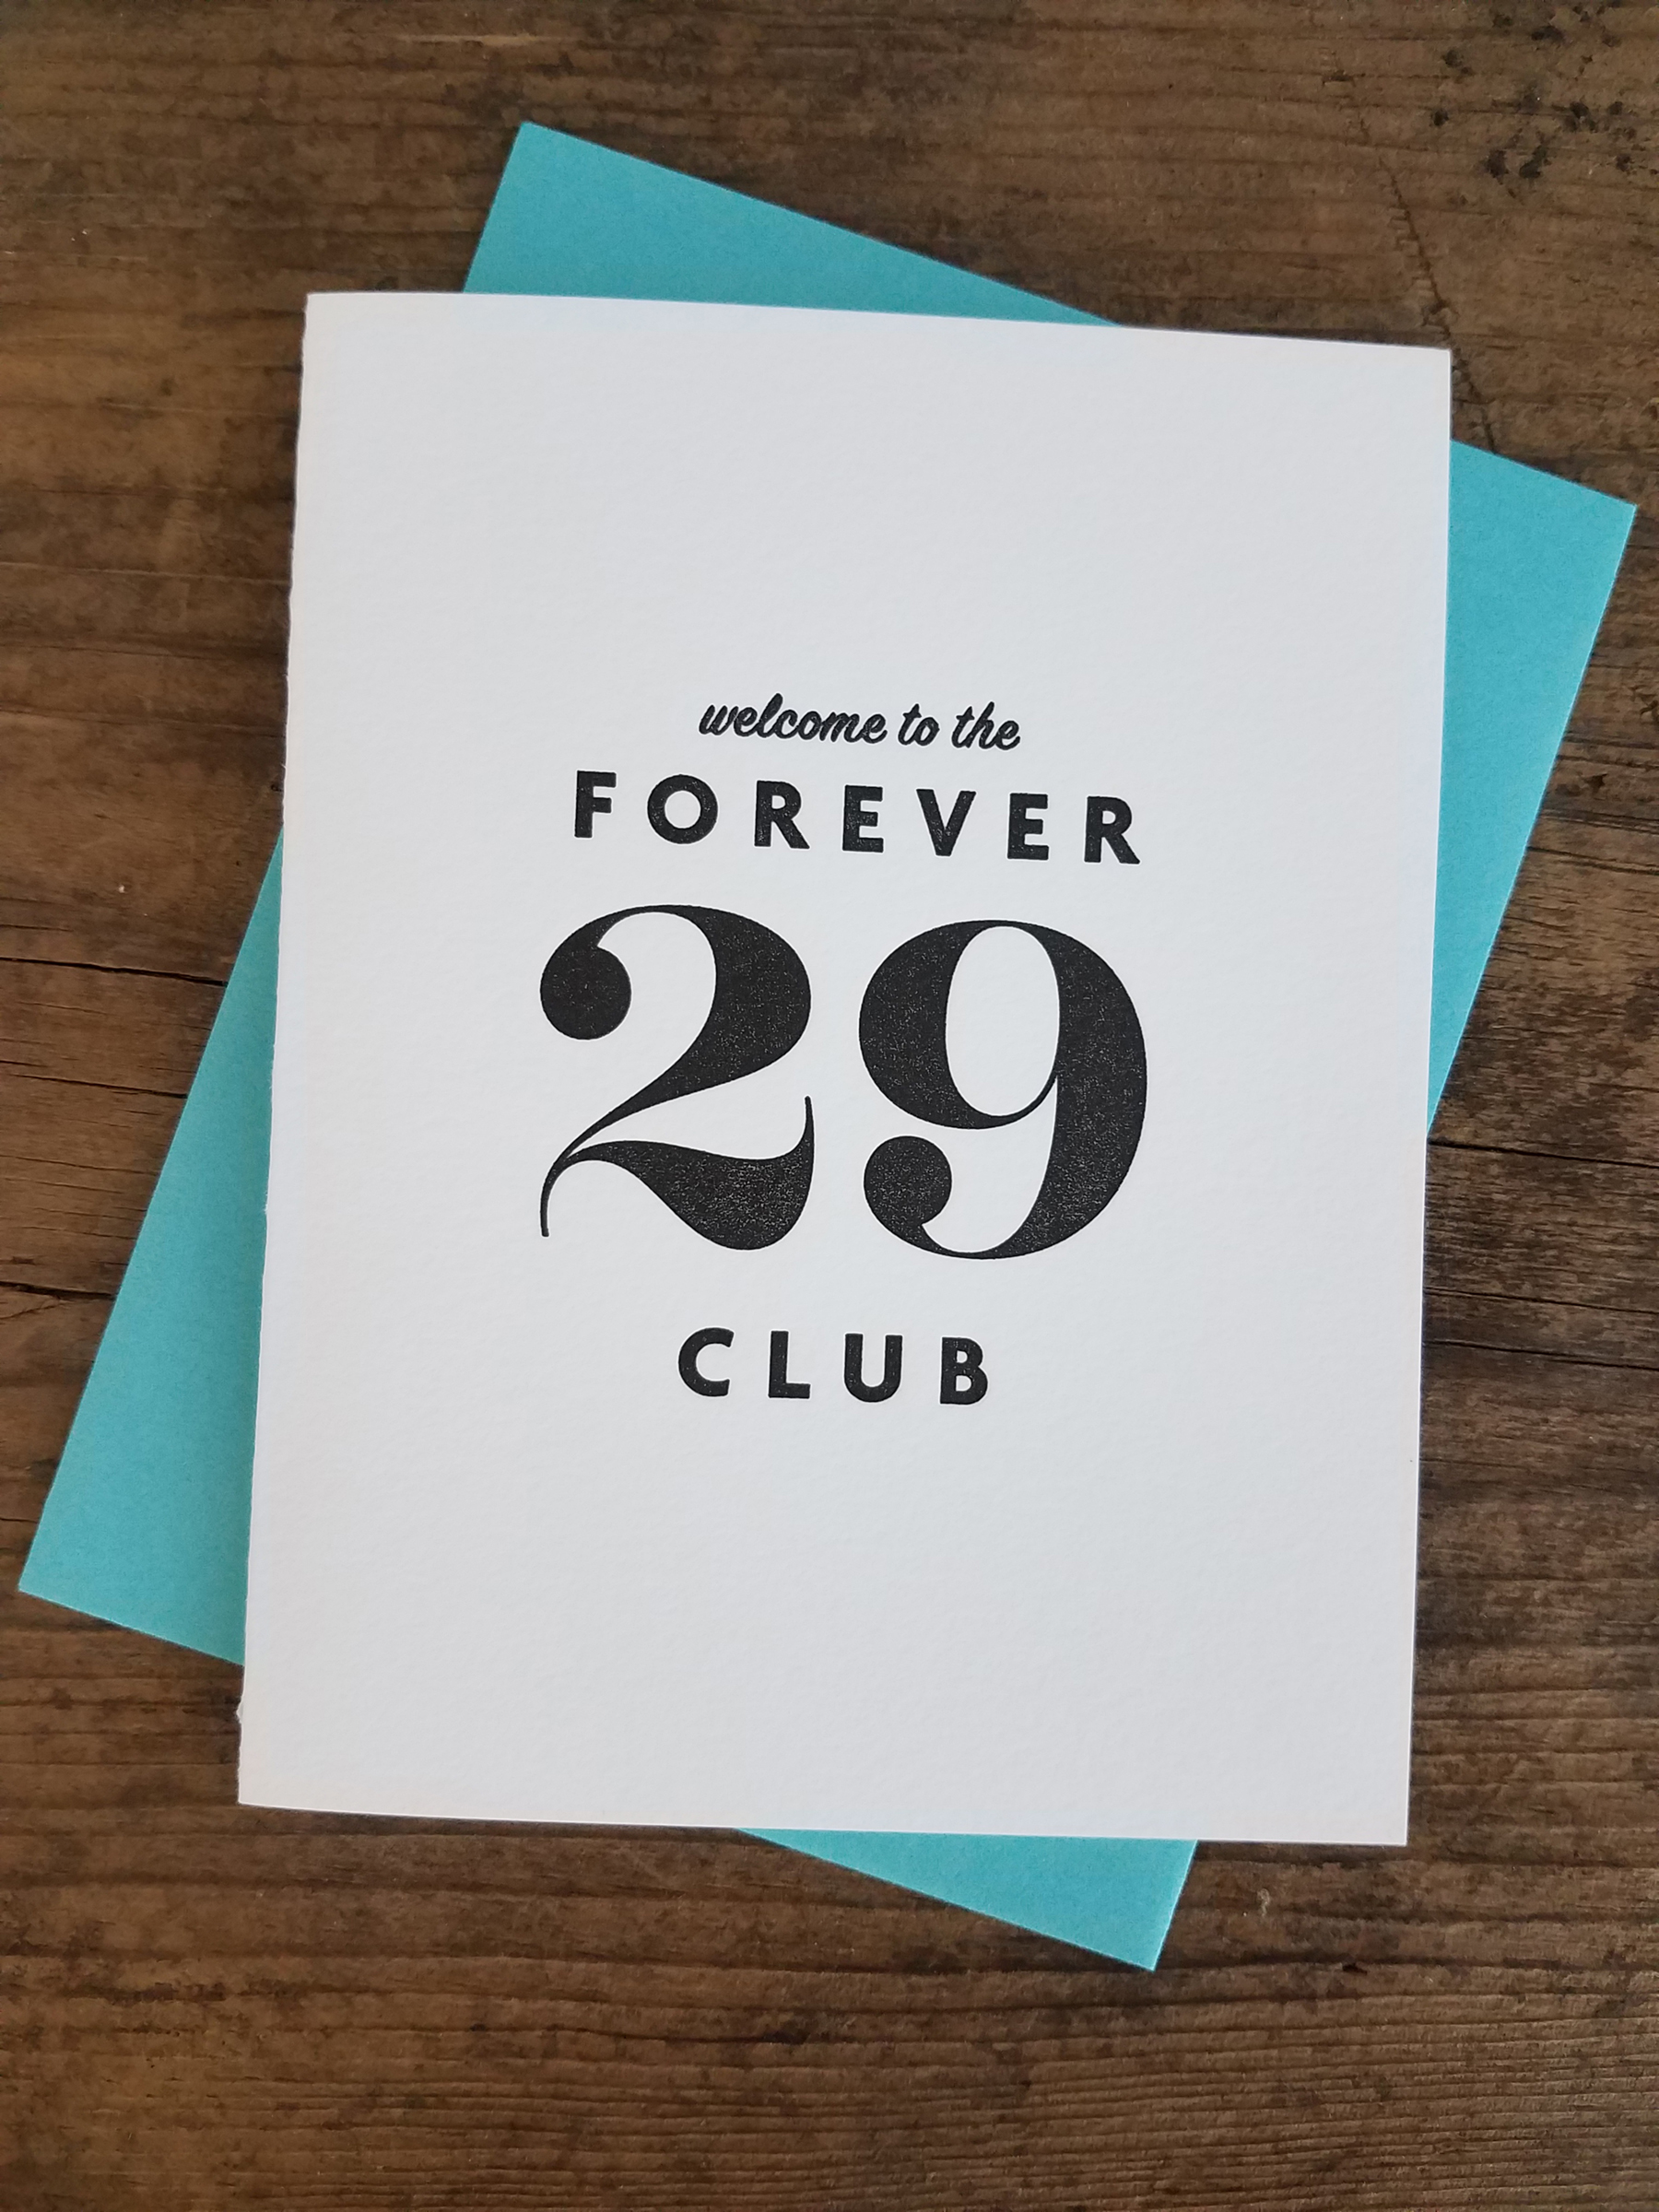 Welcome to the forever 29 club letterpress greeting card iron home greeting cards birthday welcome to the forever 29 club letterpress greeting card m4hsunfo